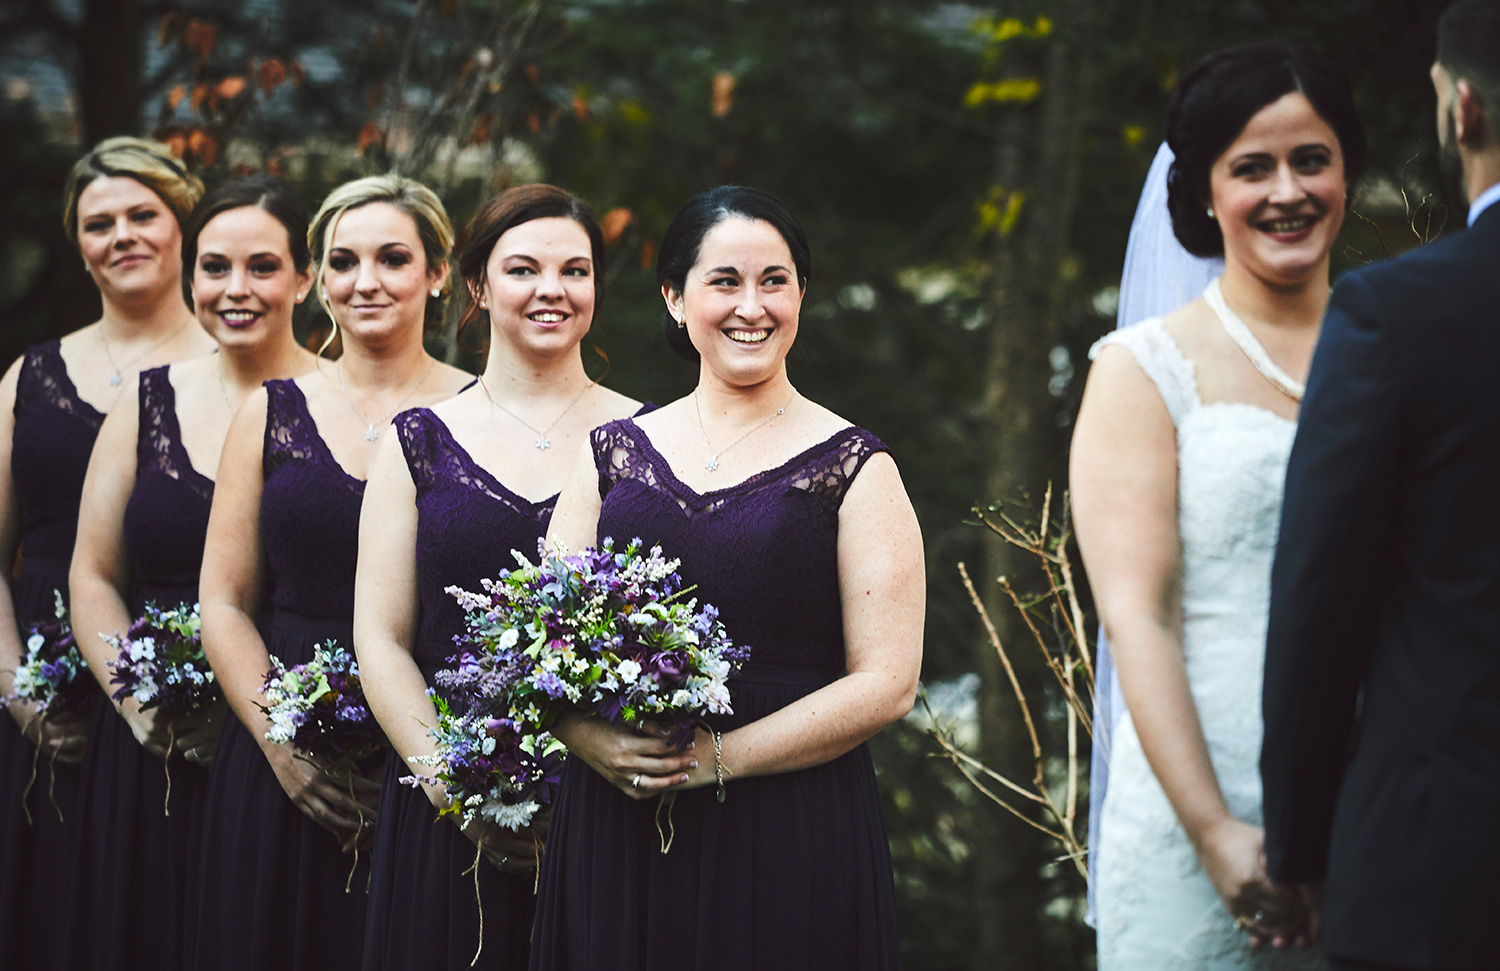 161119_ArrowParkLake&LodgeWedding_By_BriJohnsonWeddings_0110.jpg